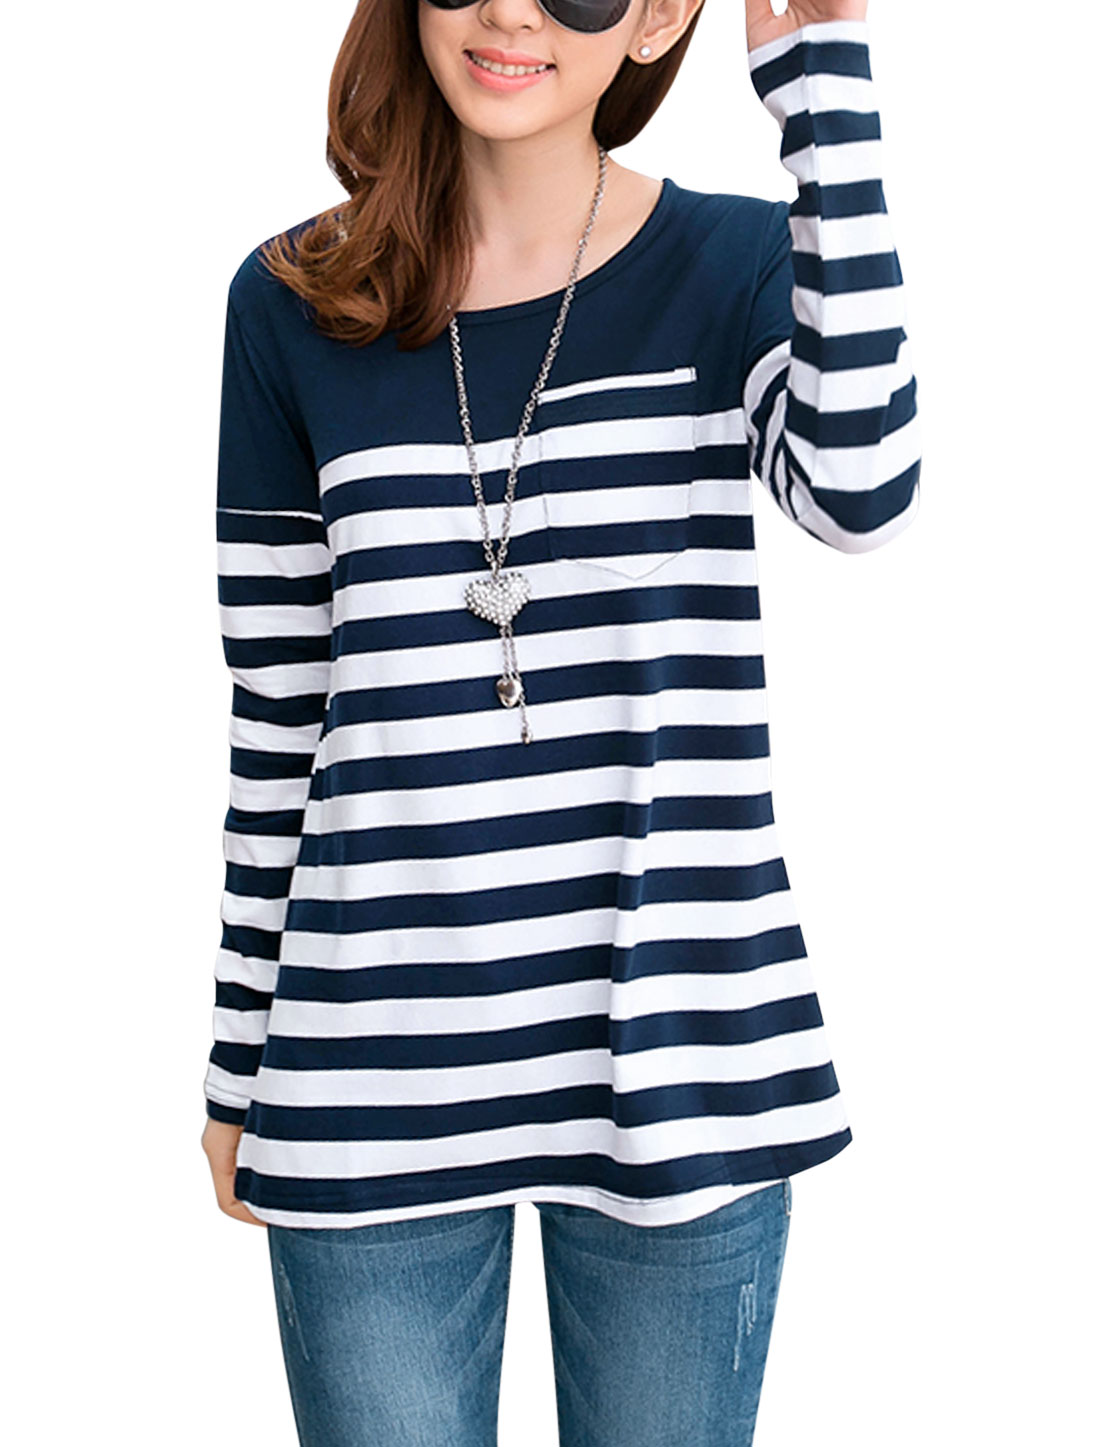 Lady Contrast Color Stripes Single Chest Pocket T-shirt Navy Blue White XS